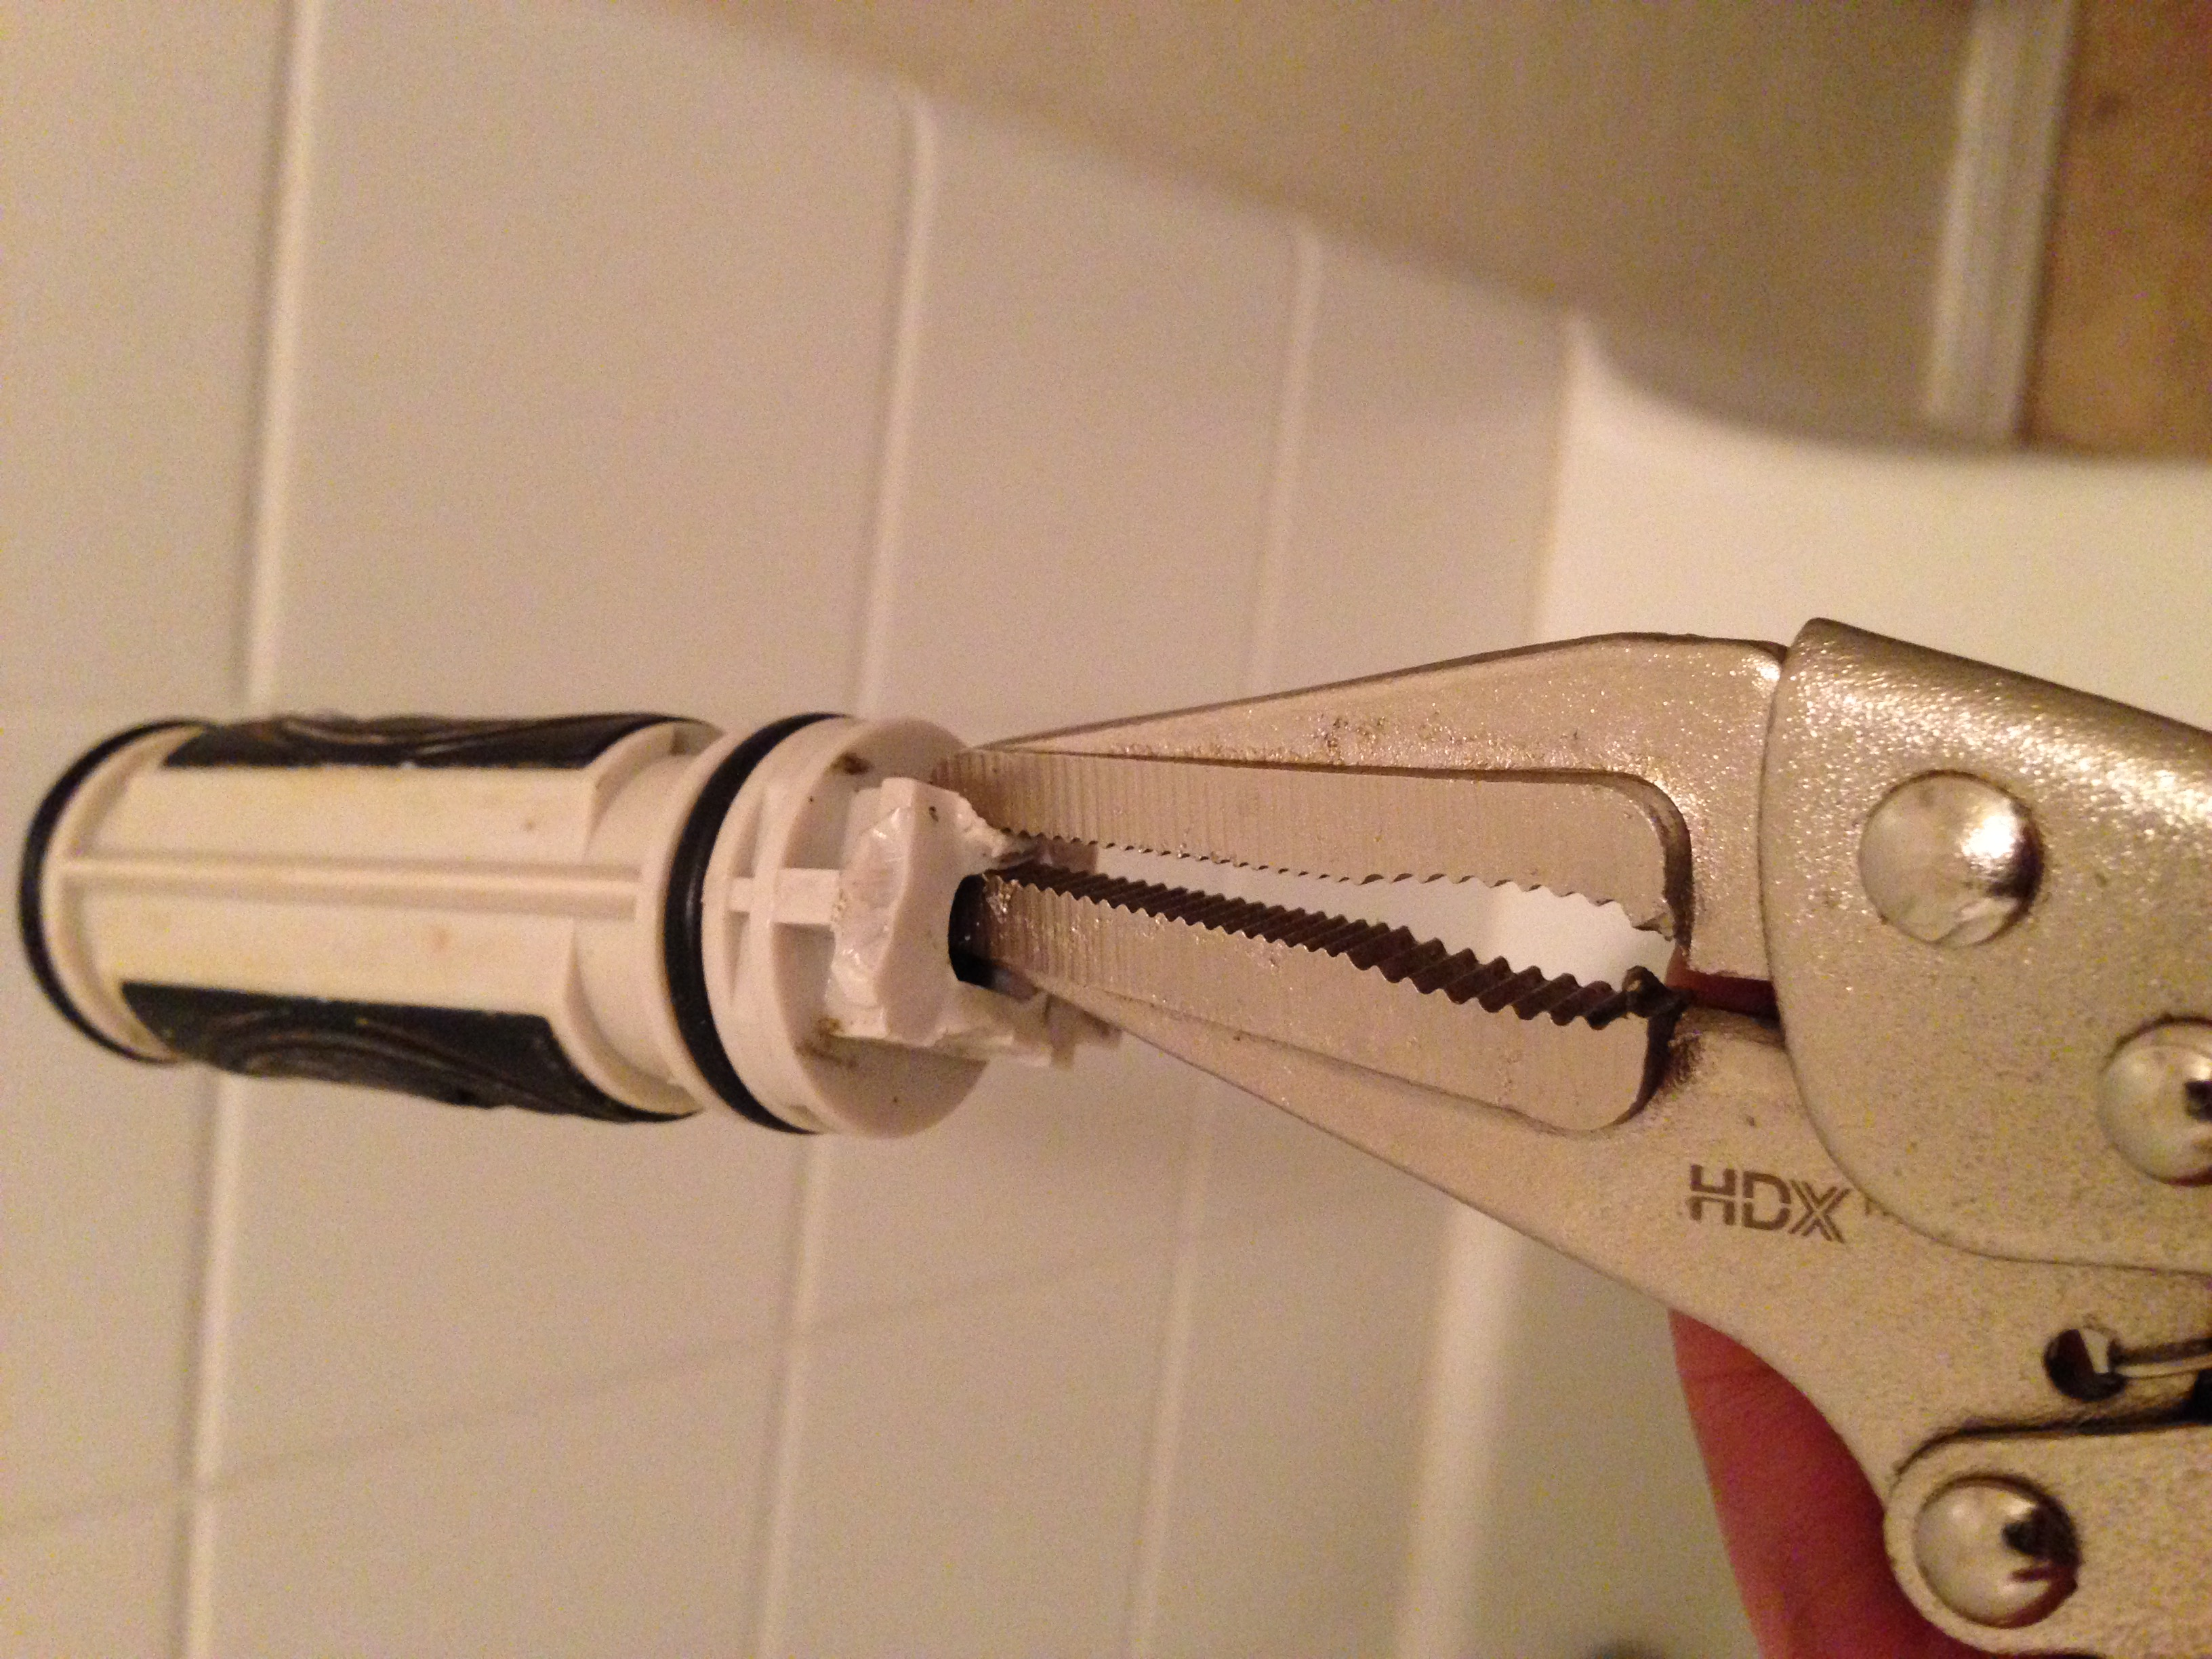 Using Locking Needle Nose Pliers To Remove Moen Valve With Broken Stem